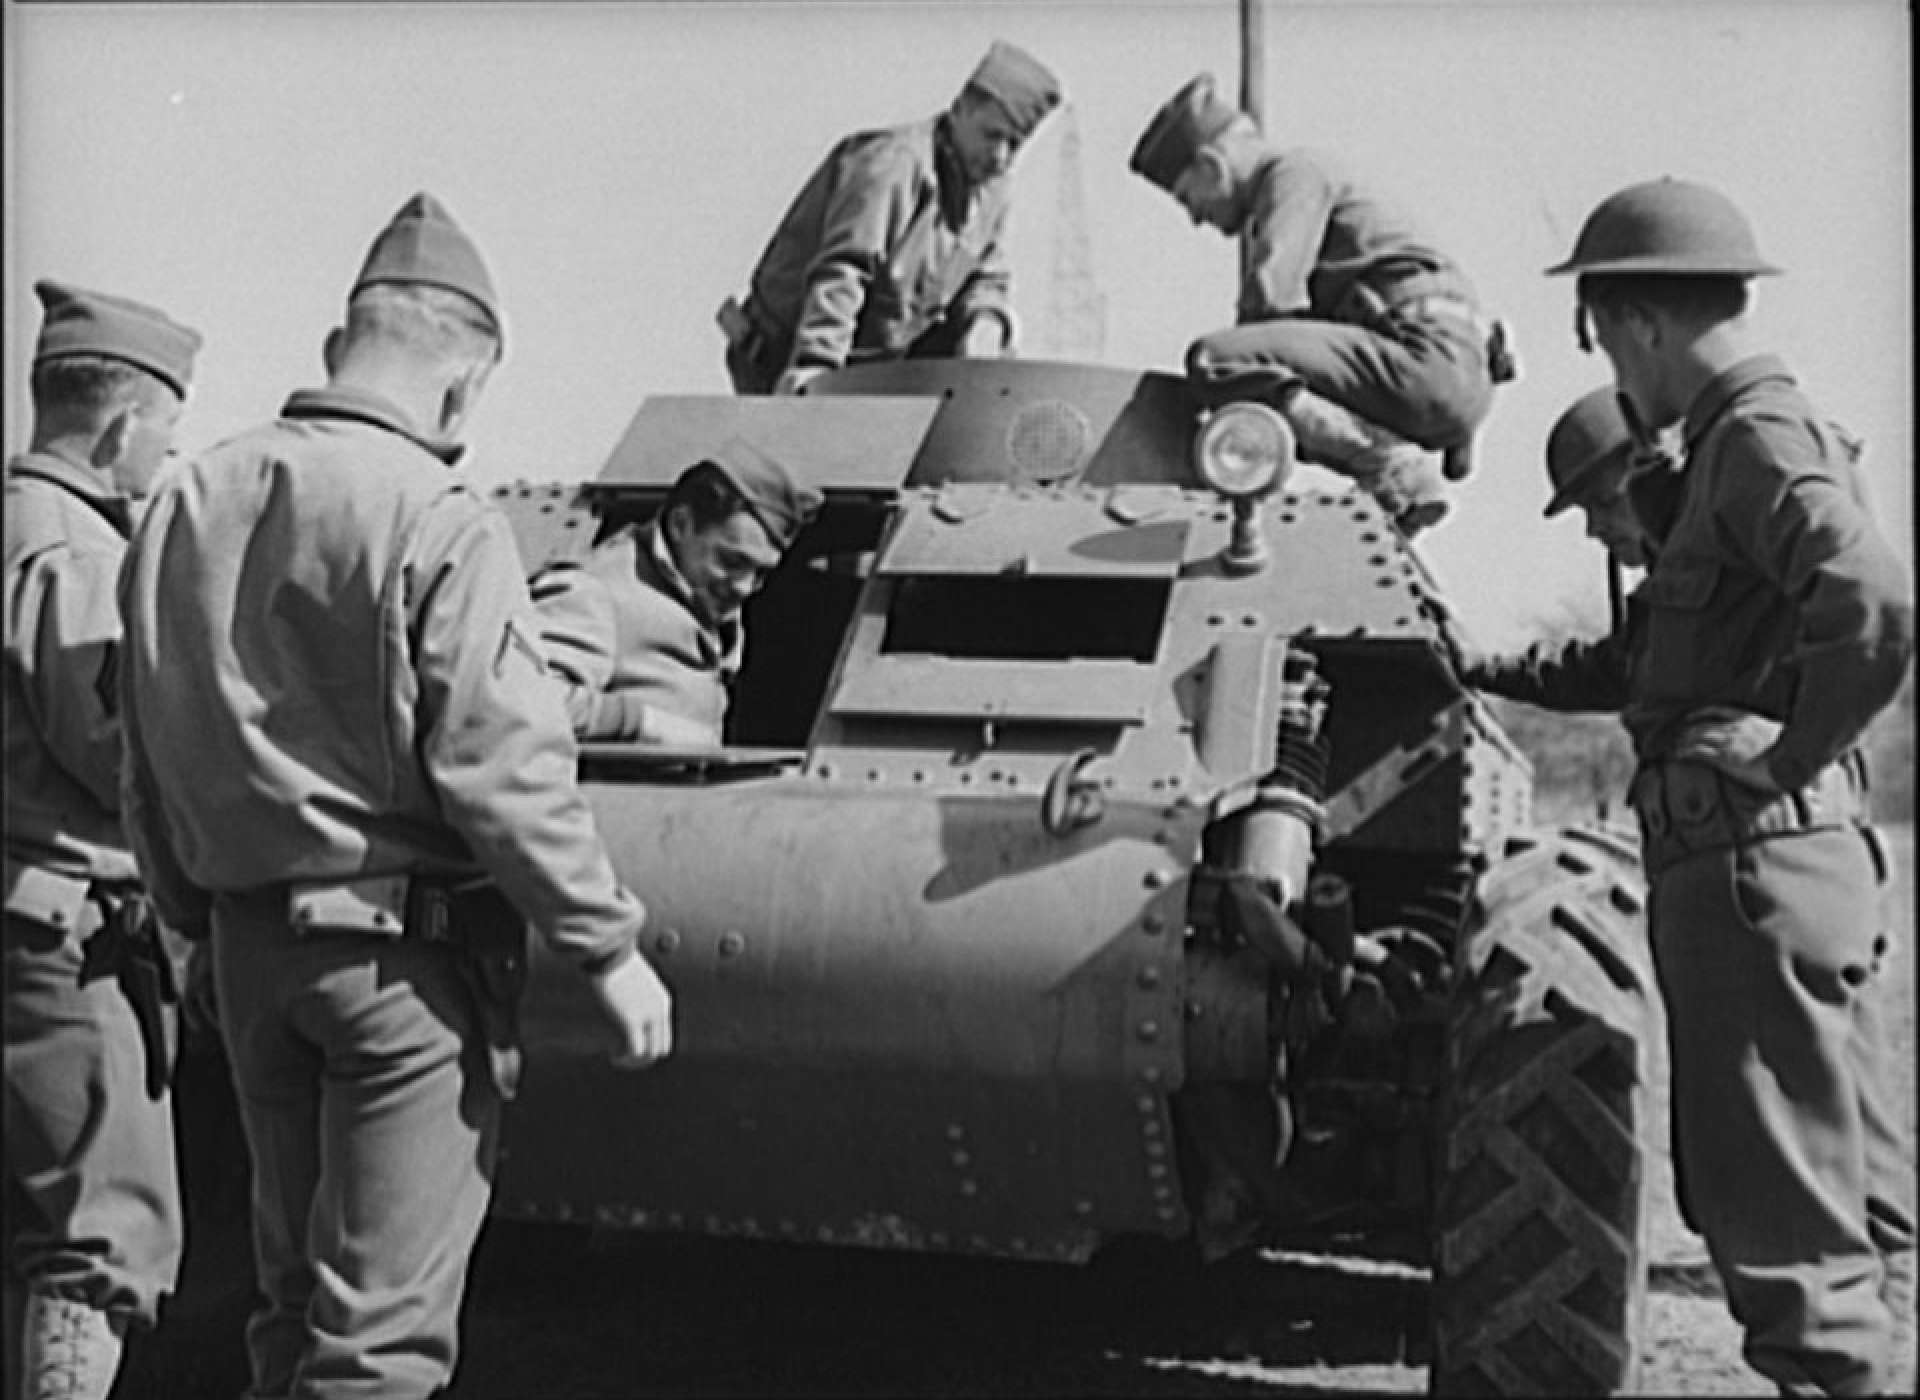 Soldiers inspecting new trackless tank during demonstration at Fort Myer, Virginia, April 1941. Library of Congress